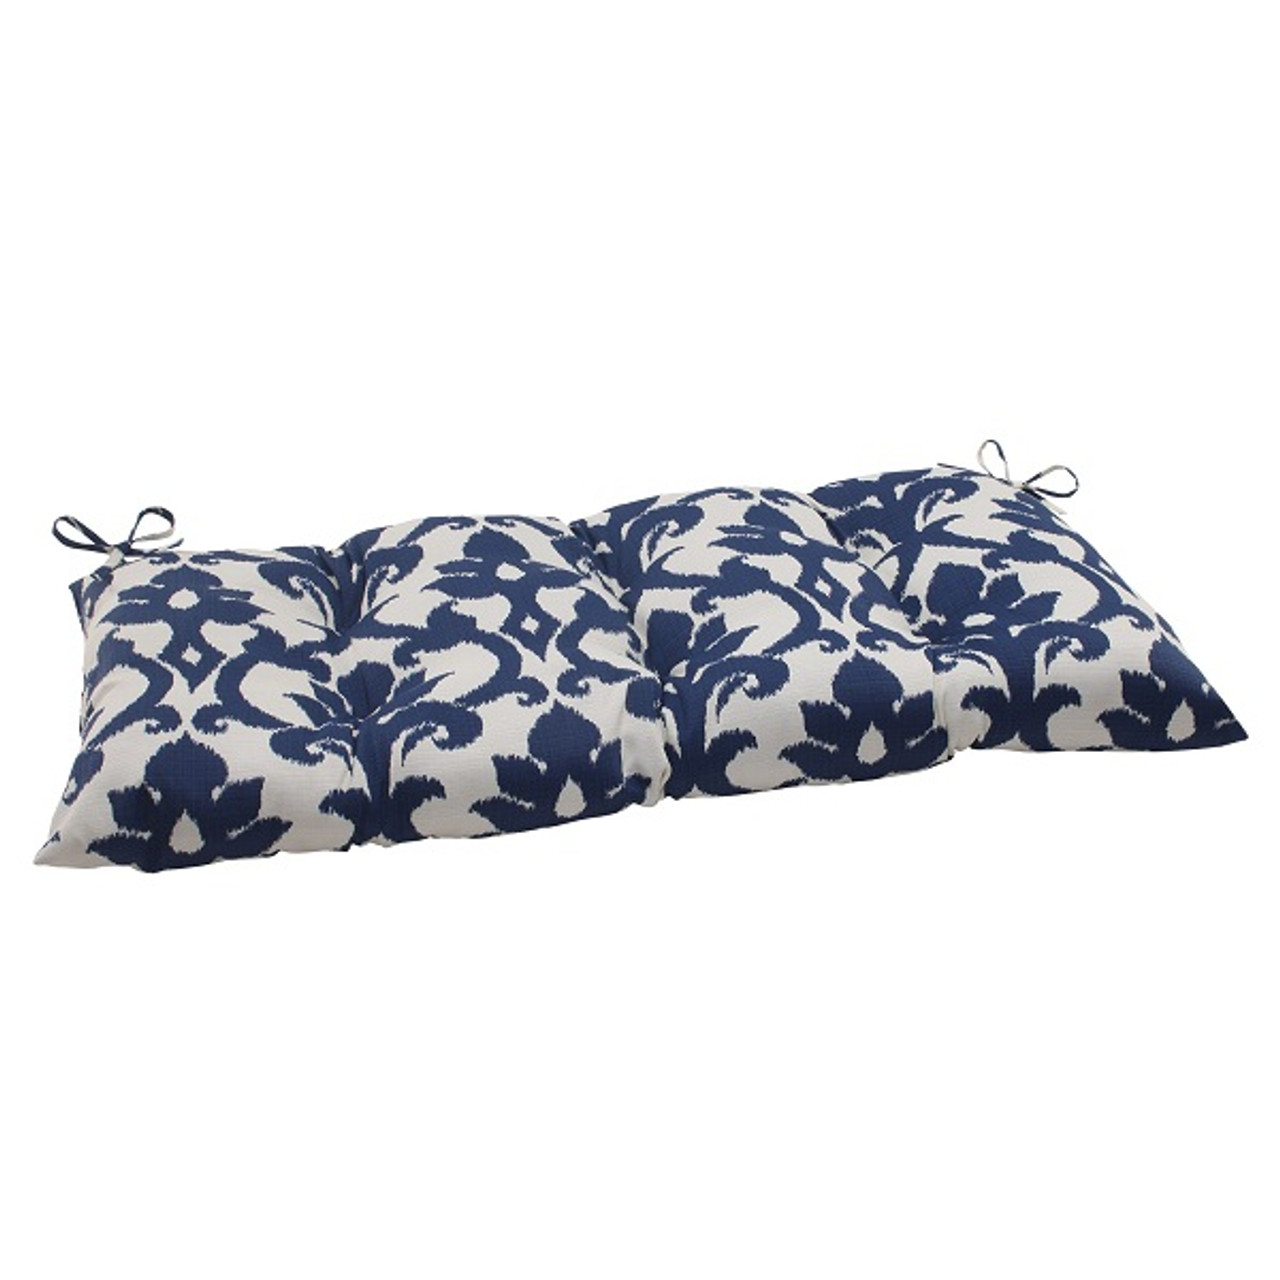 Victorian Outdoor Pillows : 44 Navy Blue and White Floral Victorian Outdoor Patio Tufted Loveseat Cushion ChristmasCentral